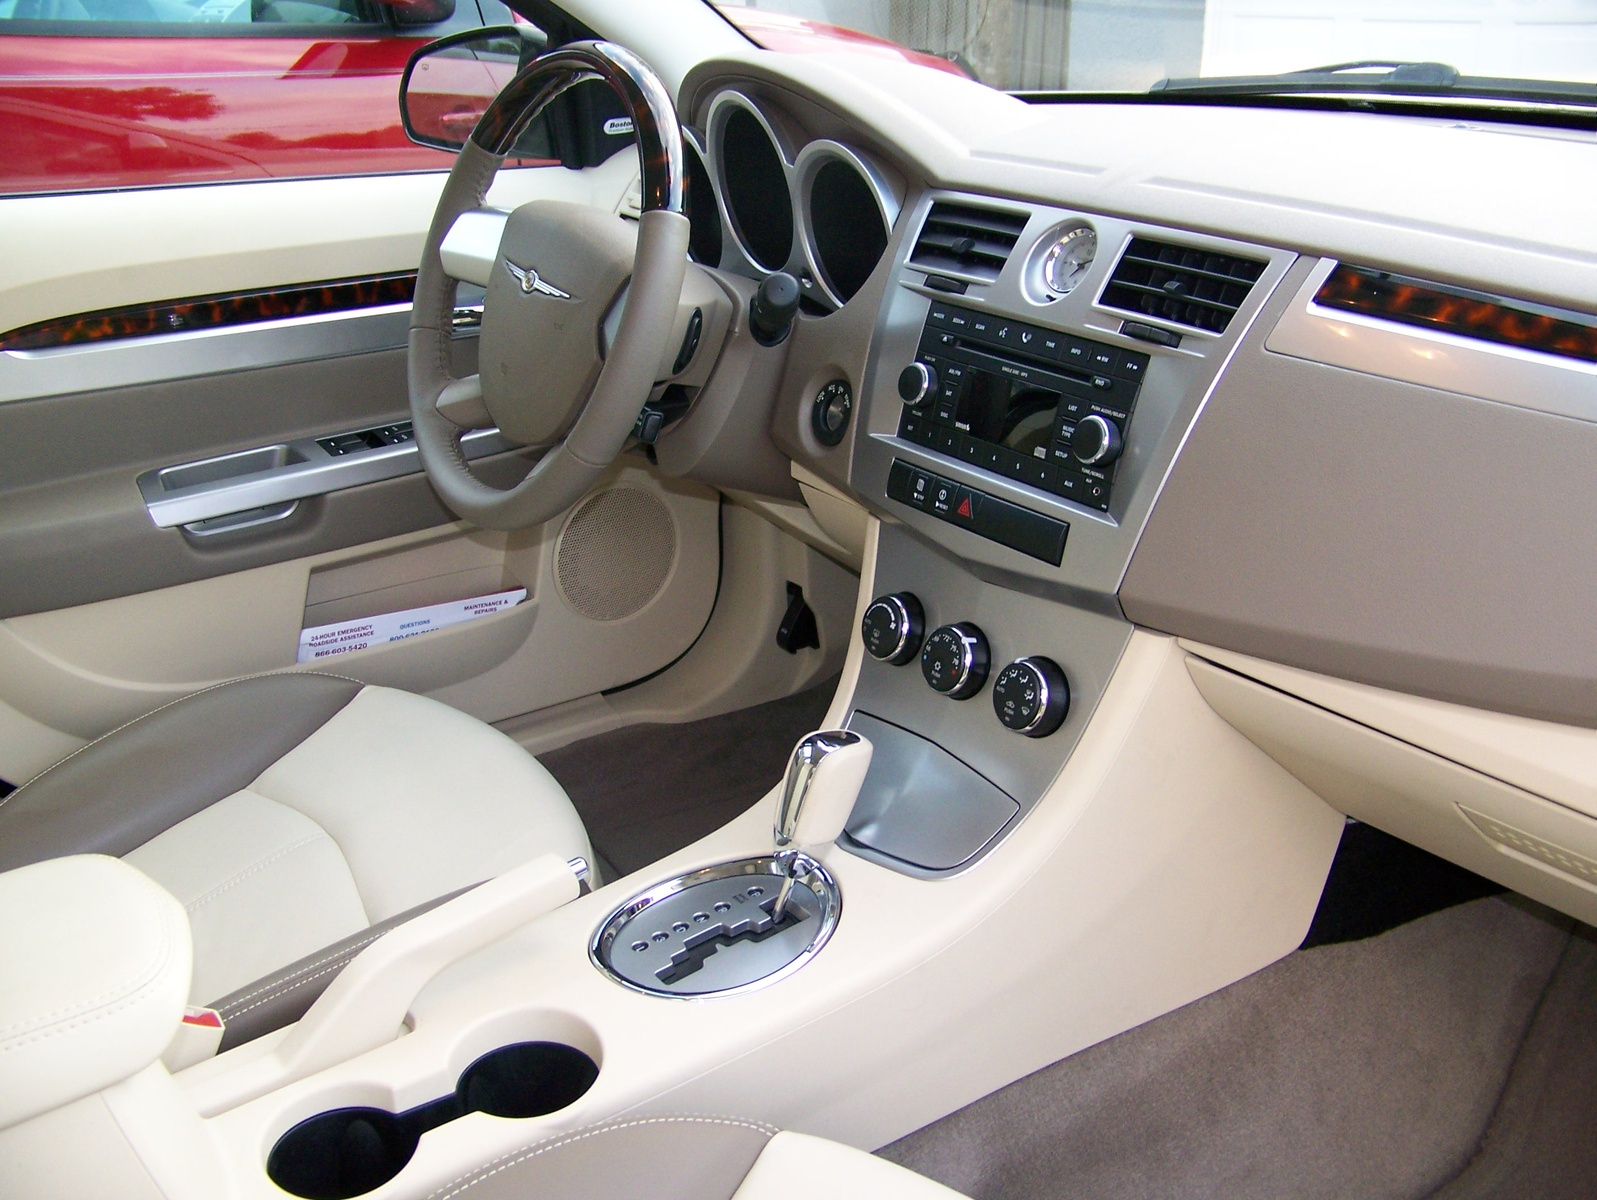 Chrysler Sebring interior #1